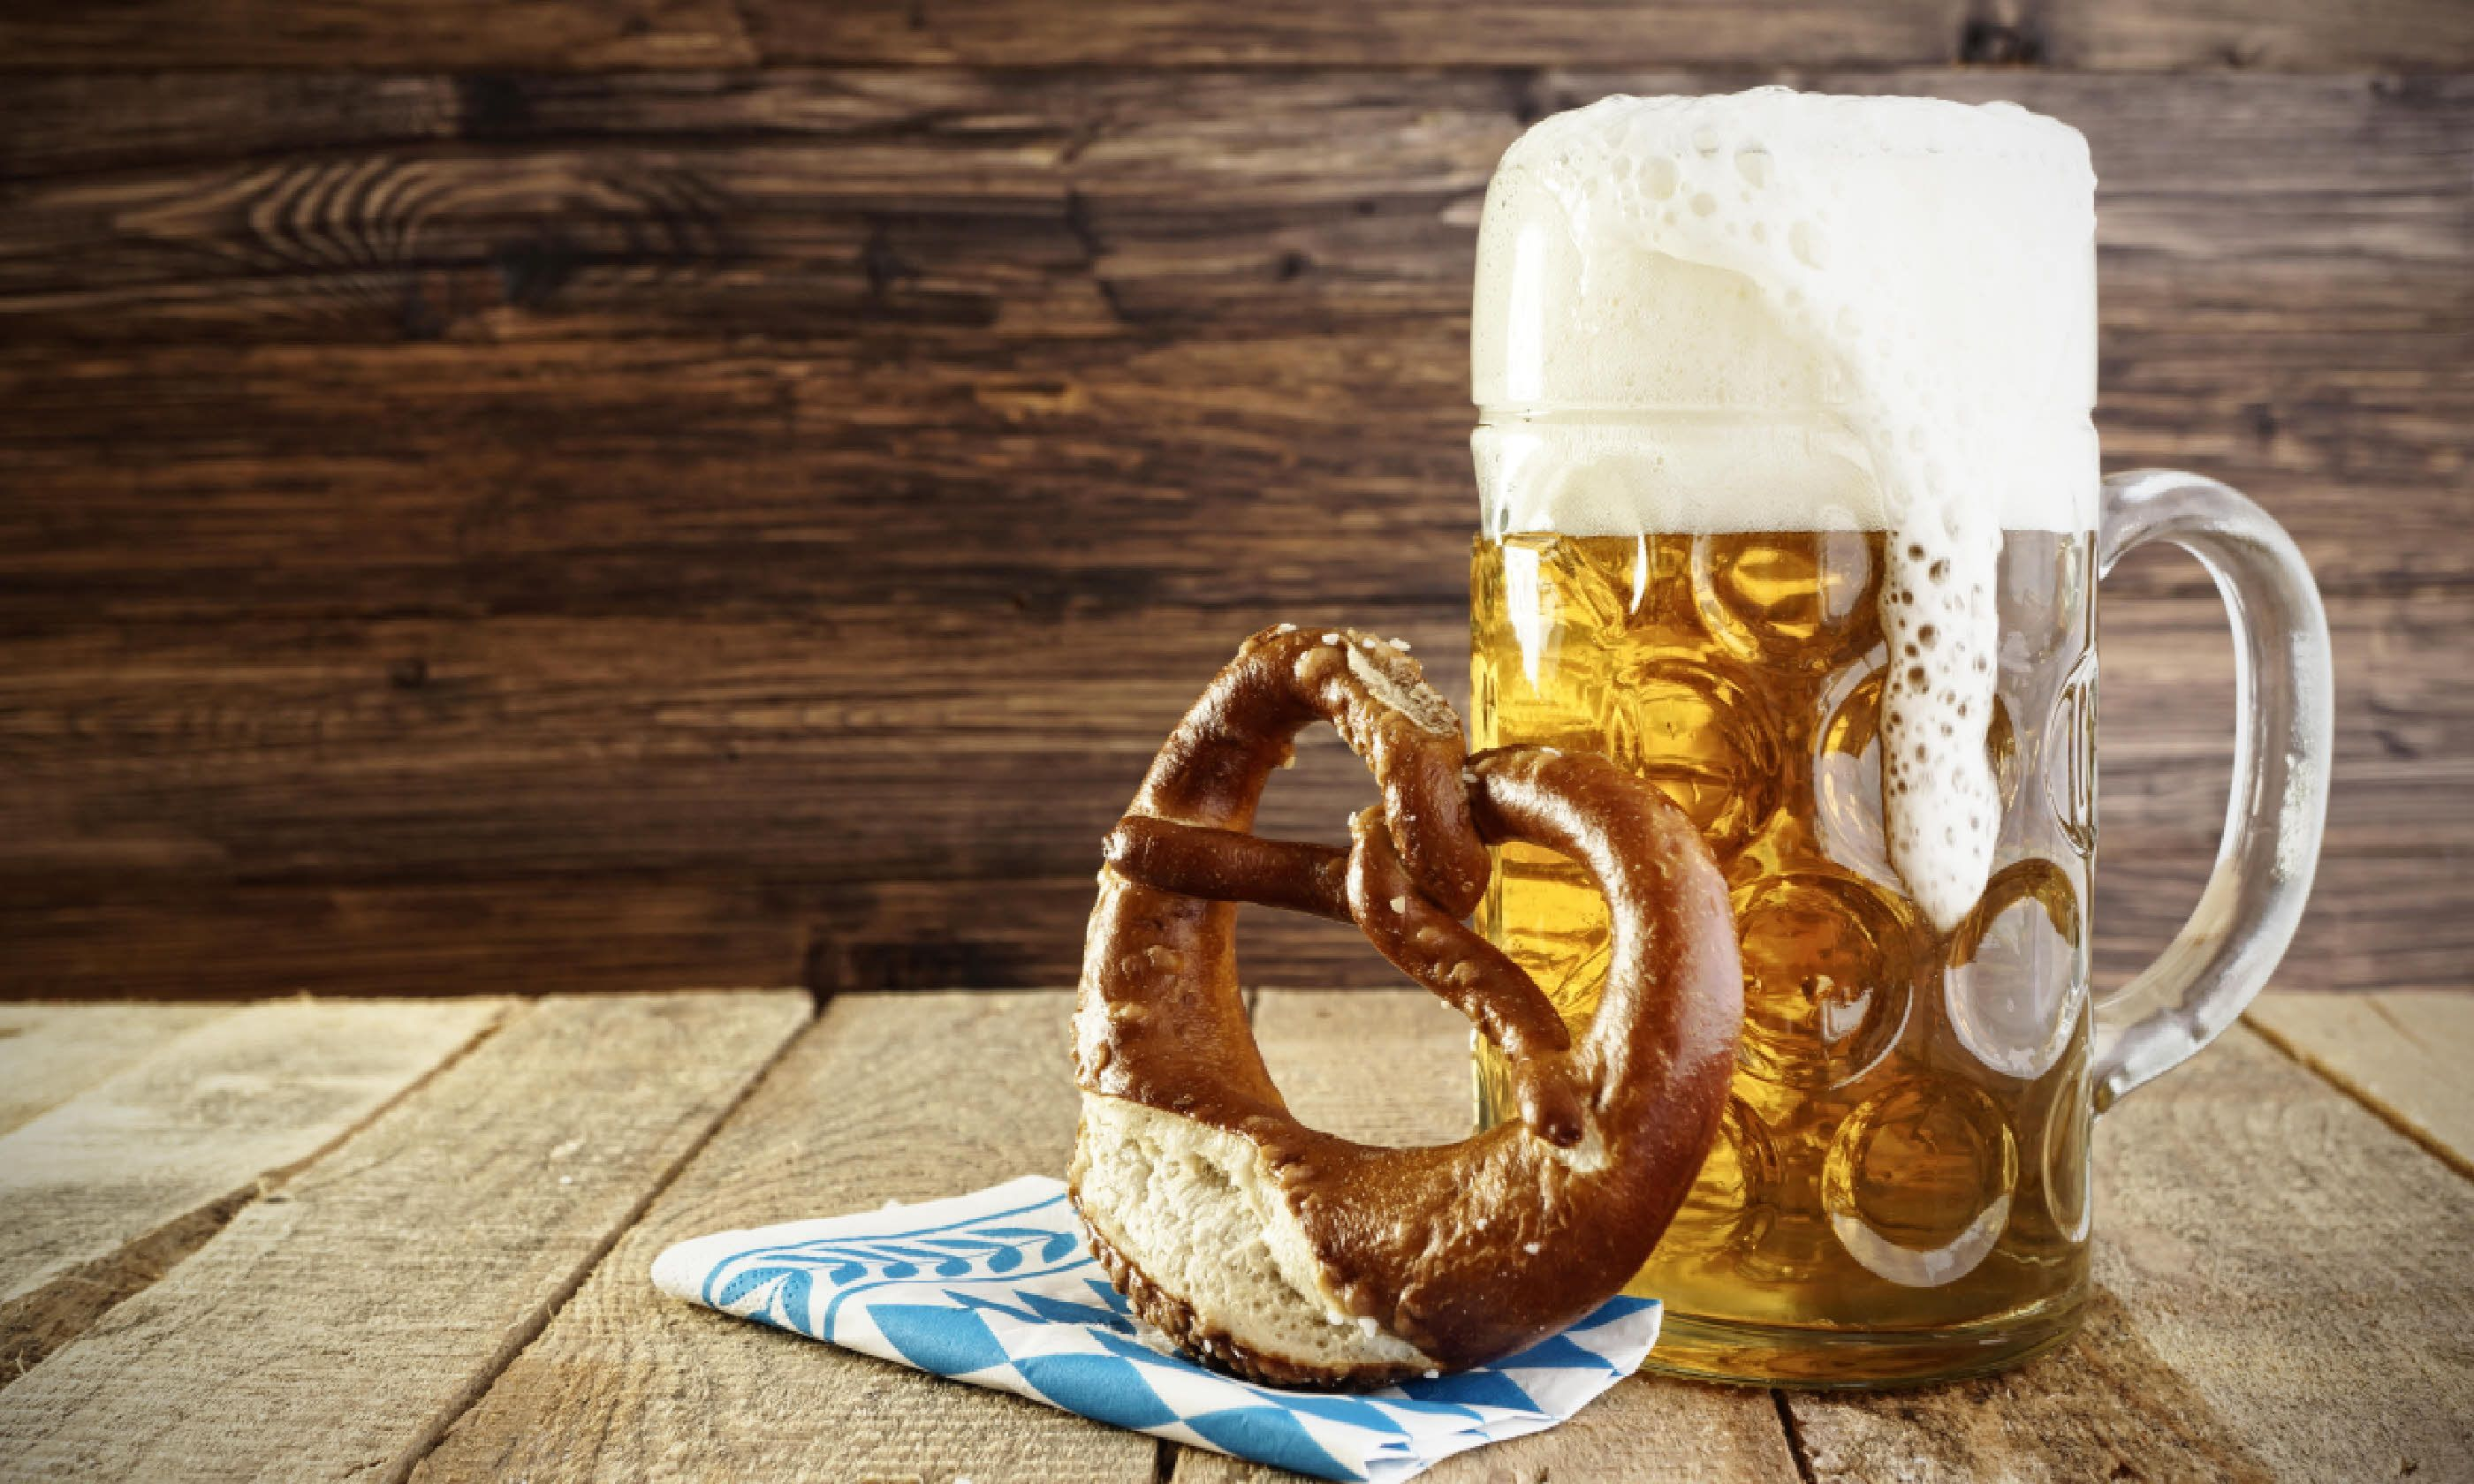 Beer and pretzel (Shutterstock)